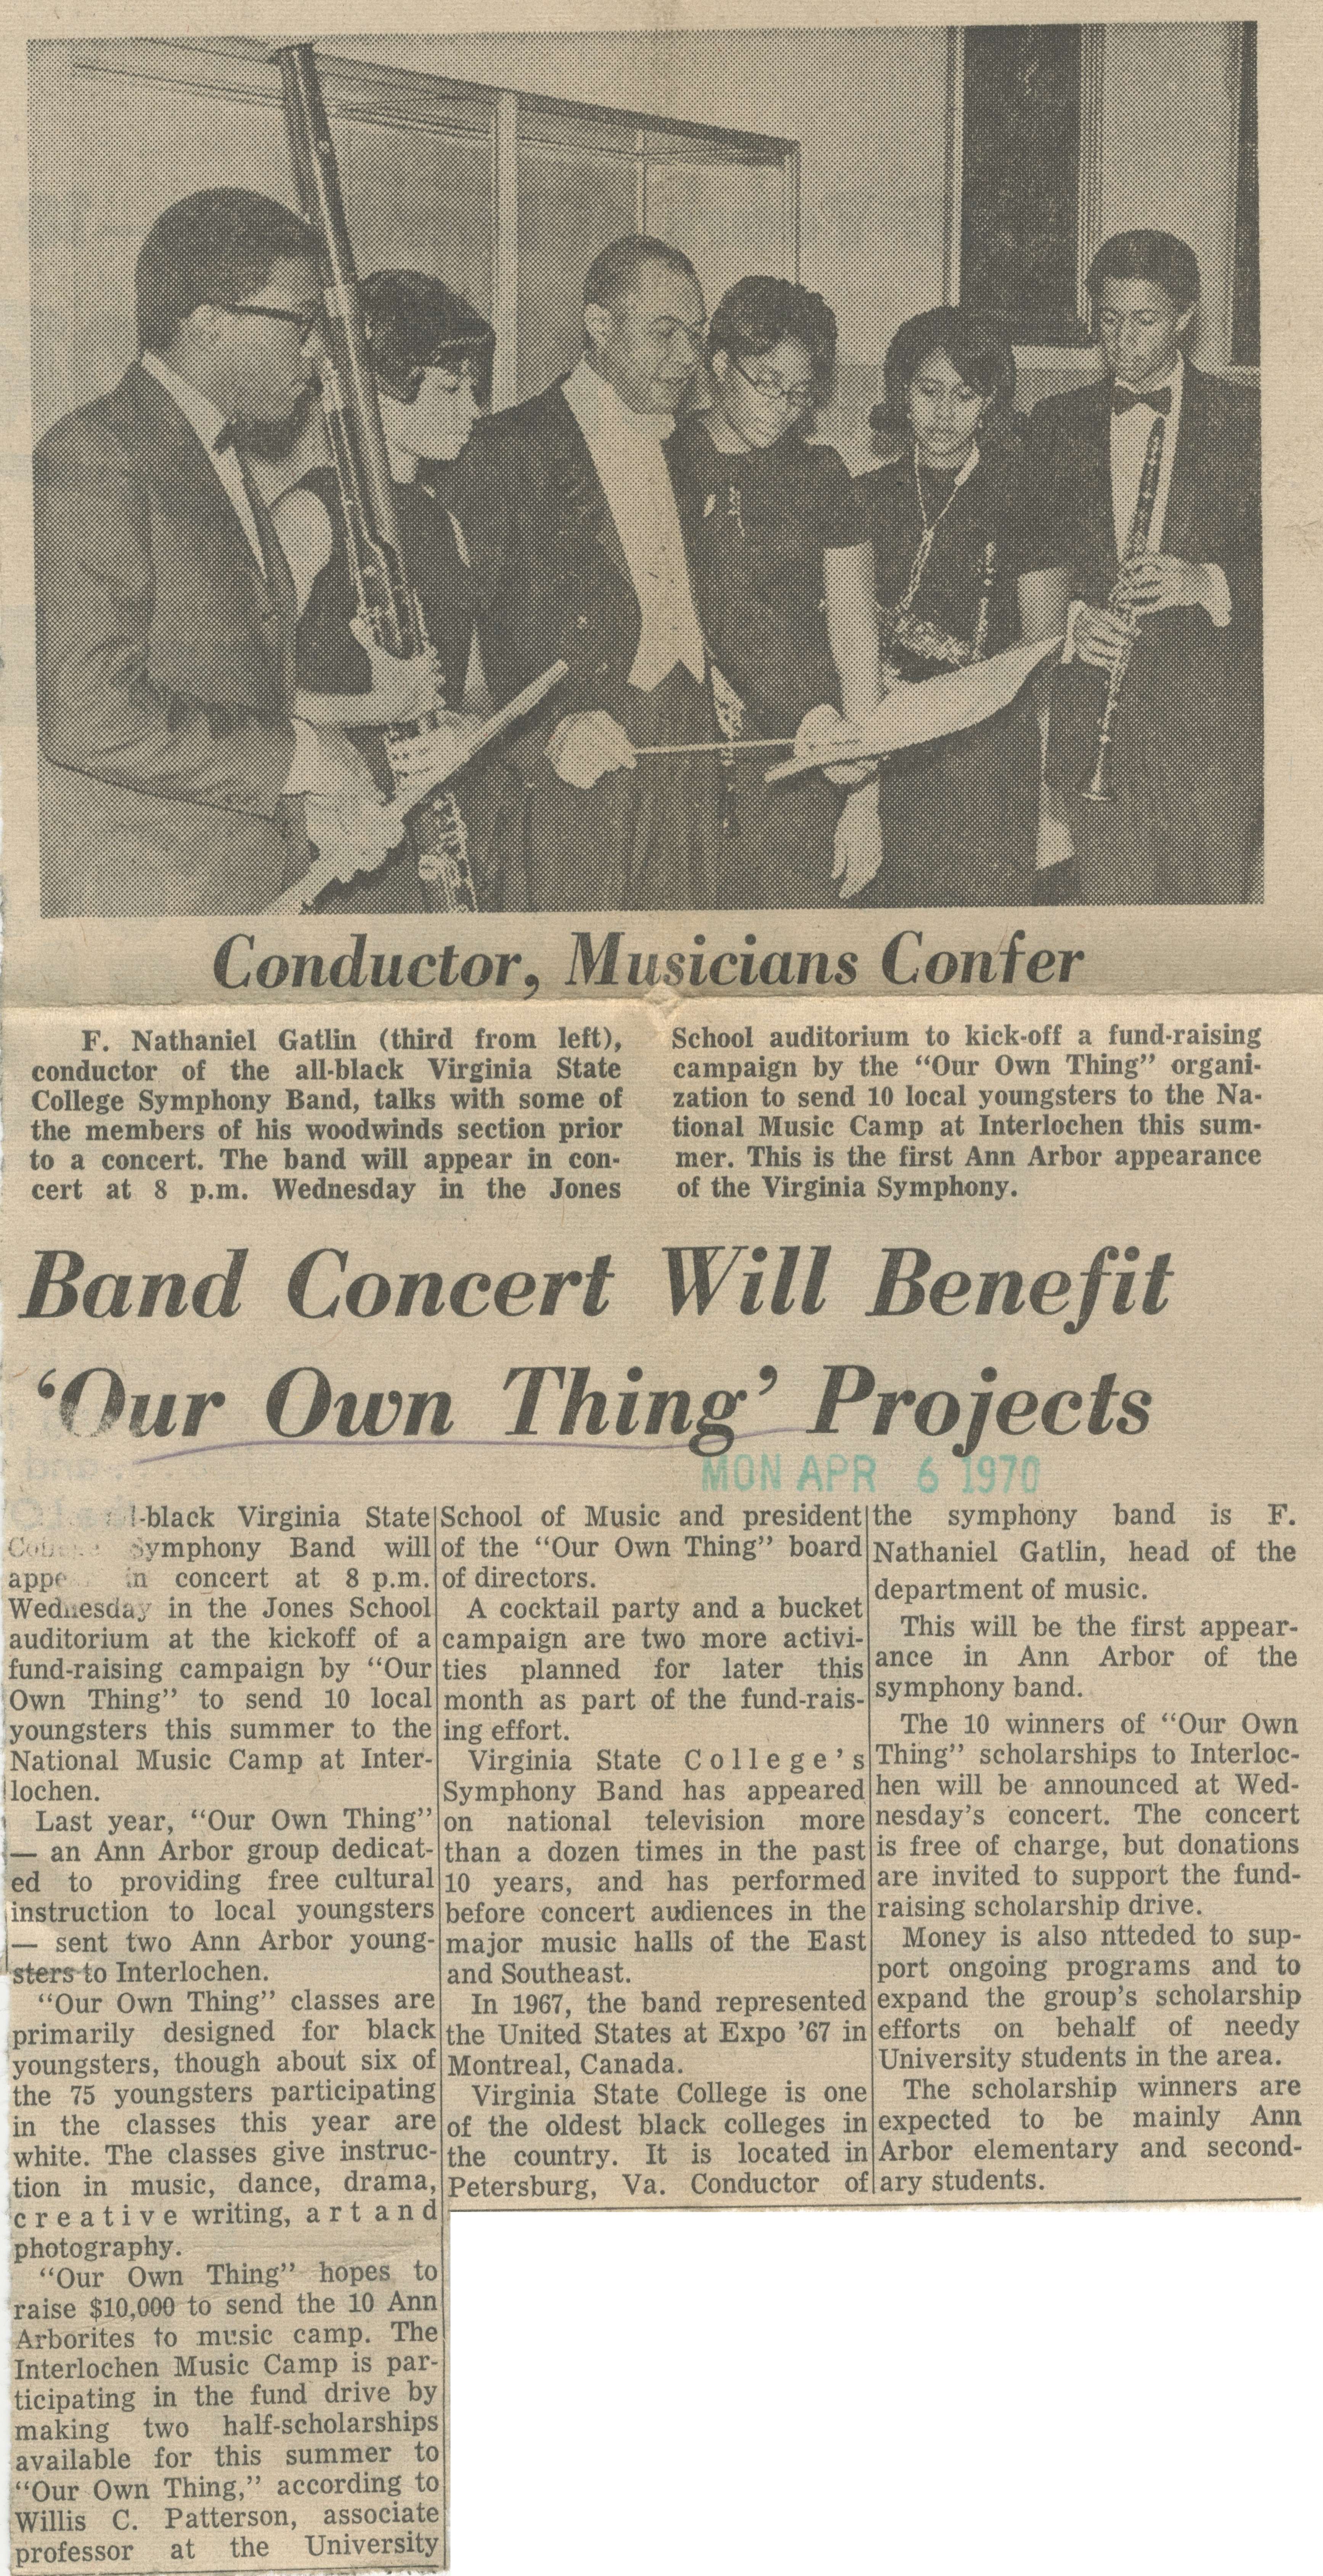 Band Concert Will Benefit 'Our Own Thing' Projects image